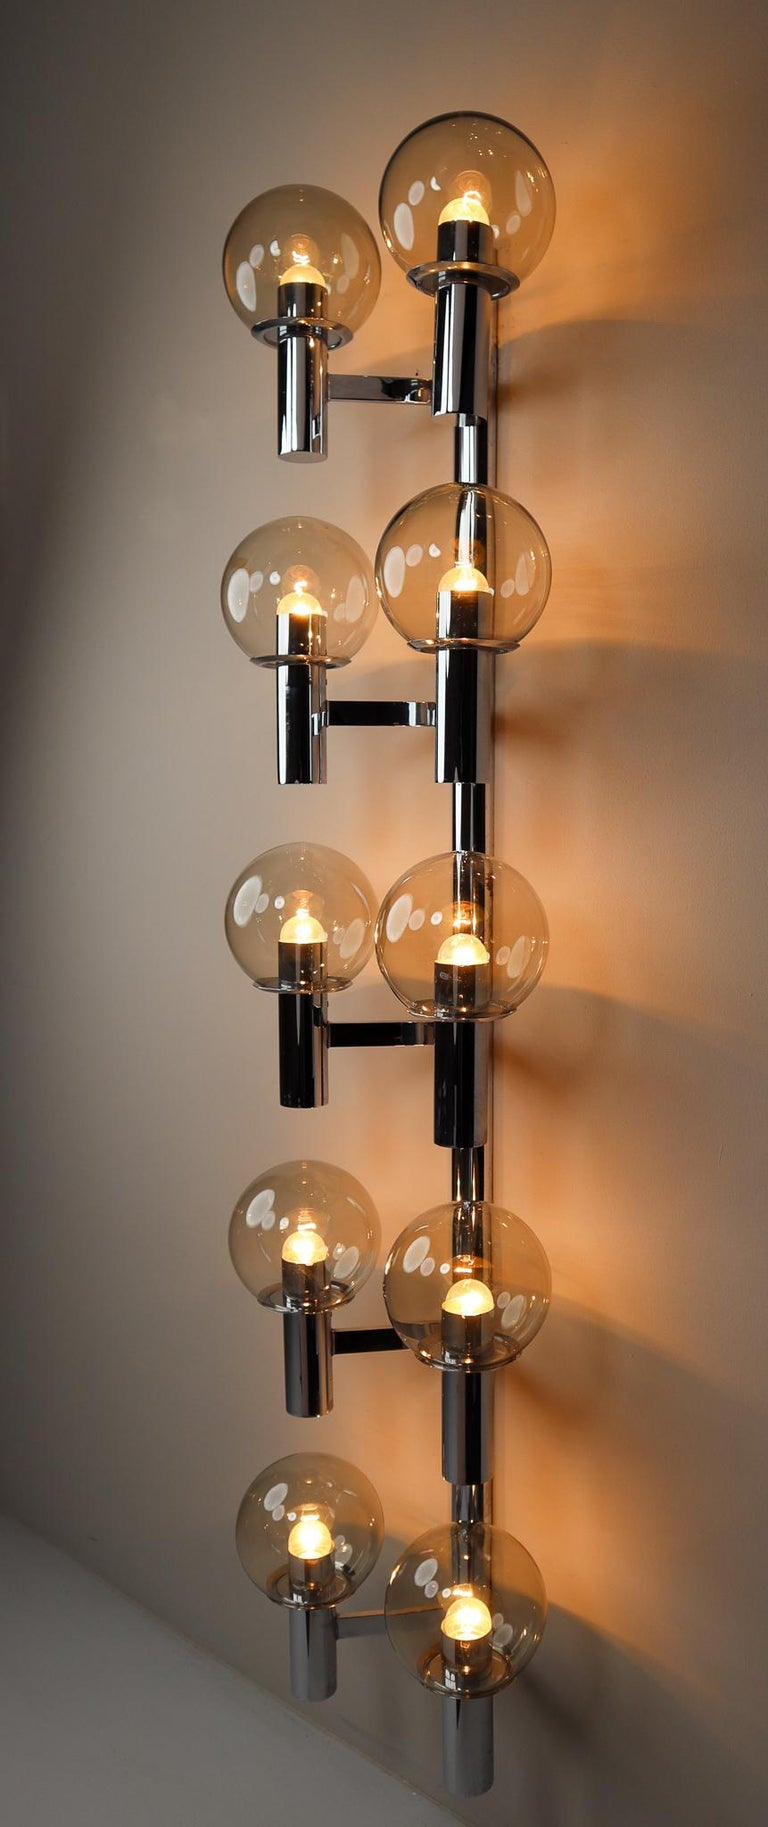 Late 20th Century Large Mid-Century Modern Chrome Wall lights / Sculptures, Italy, 1970s For Sale